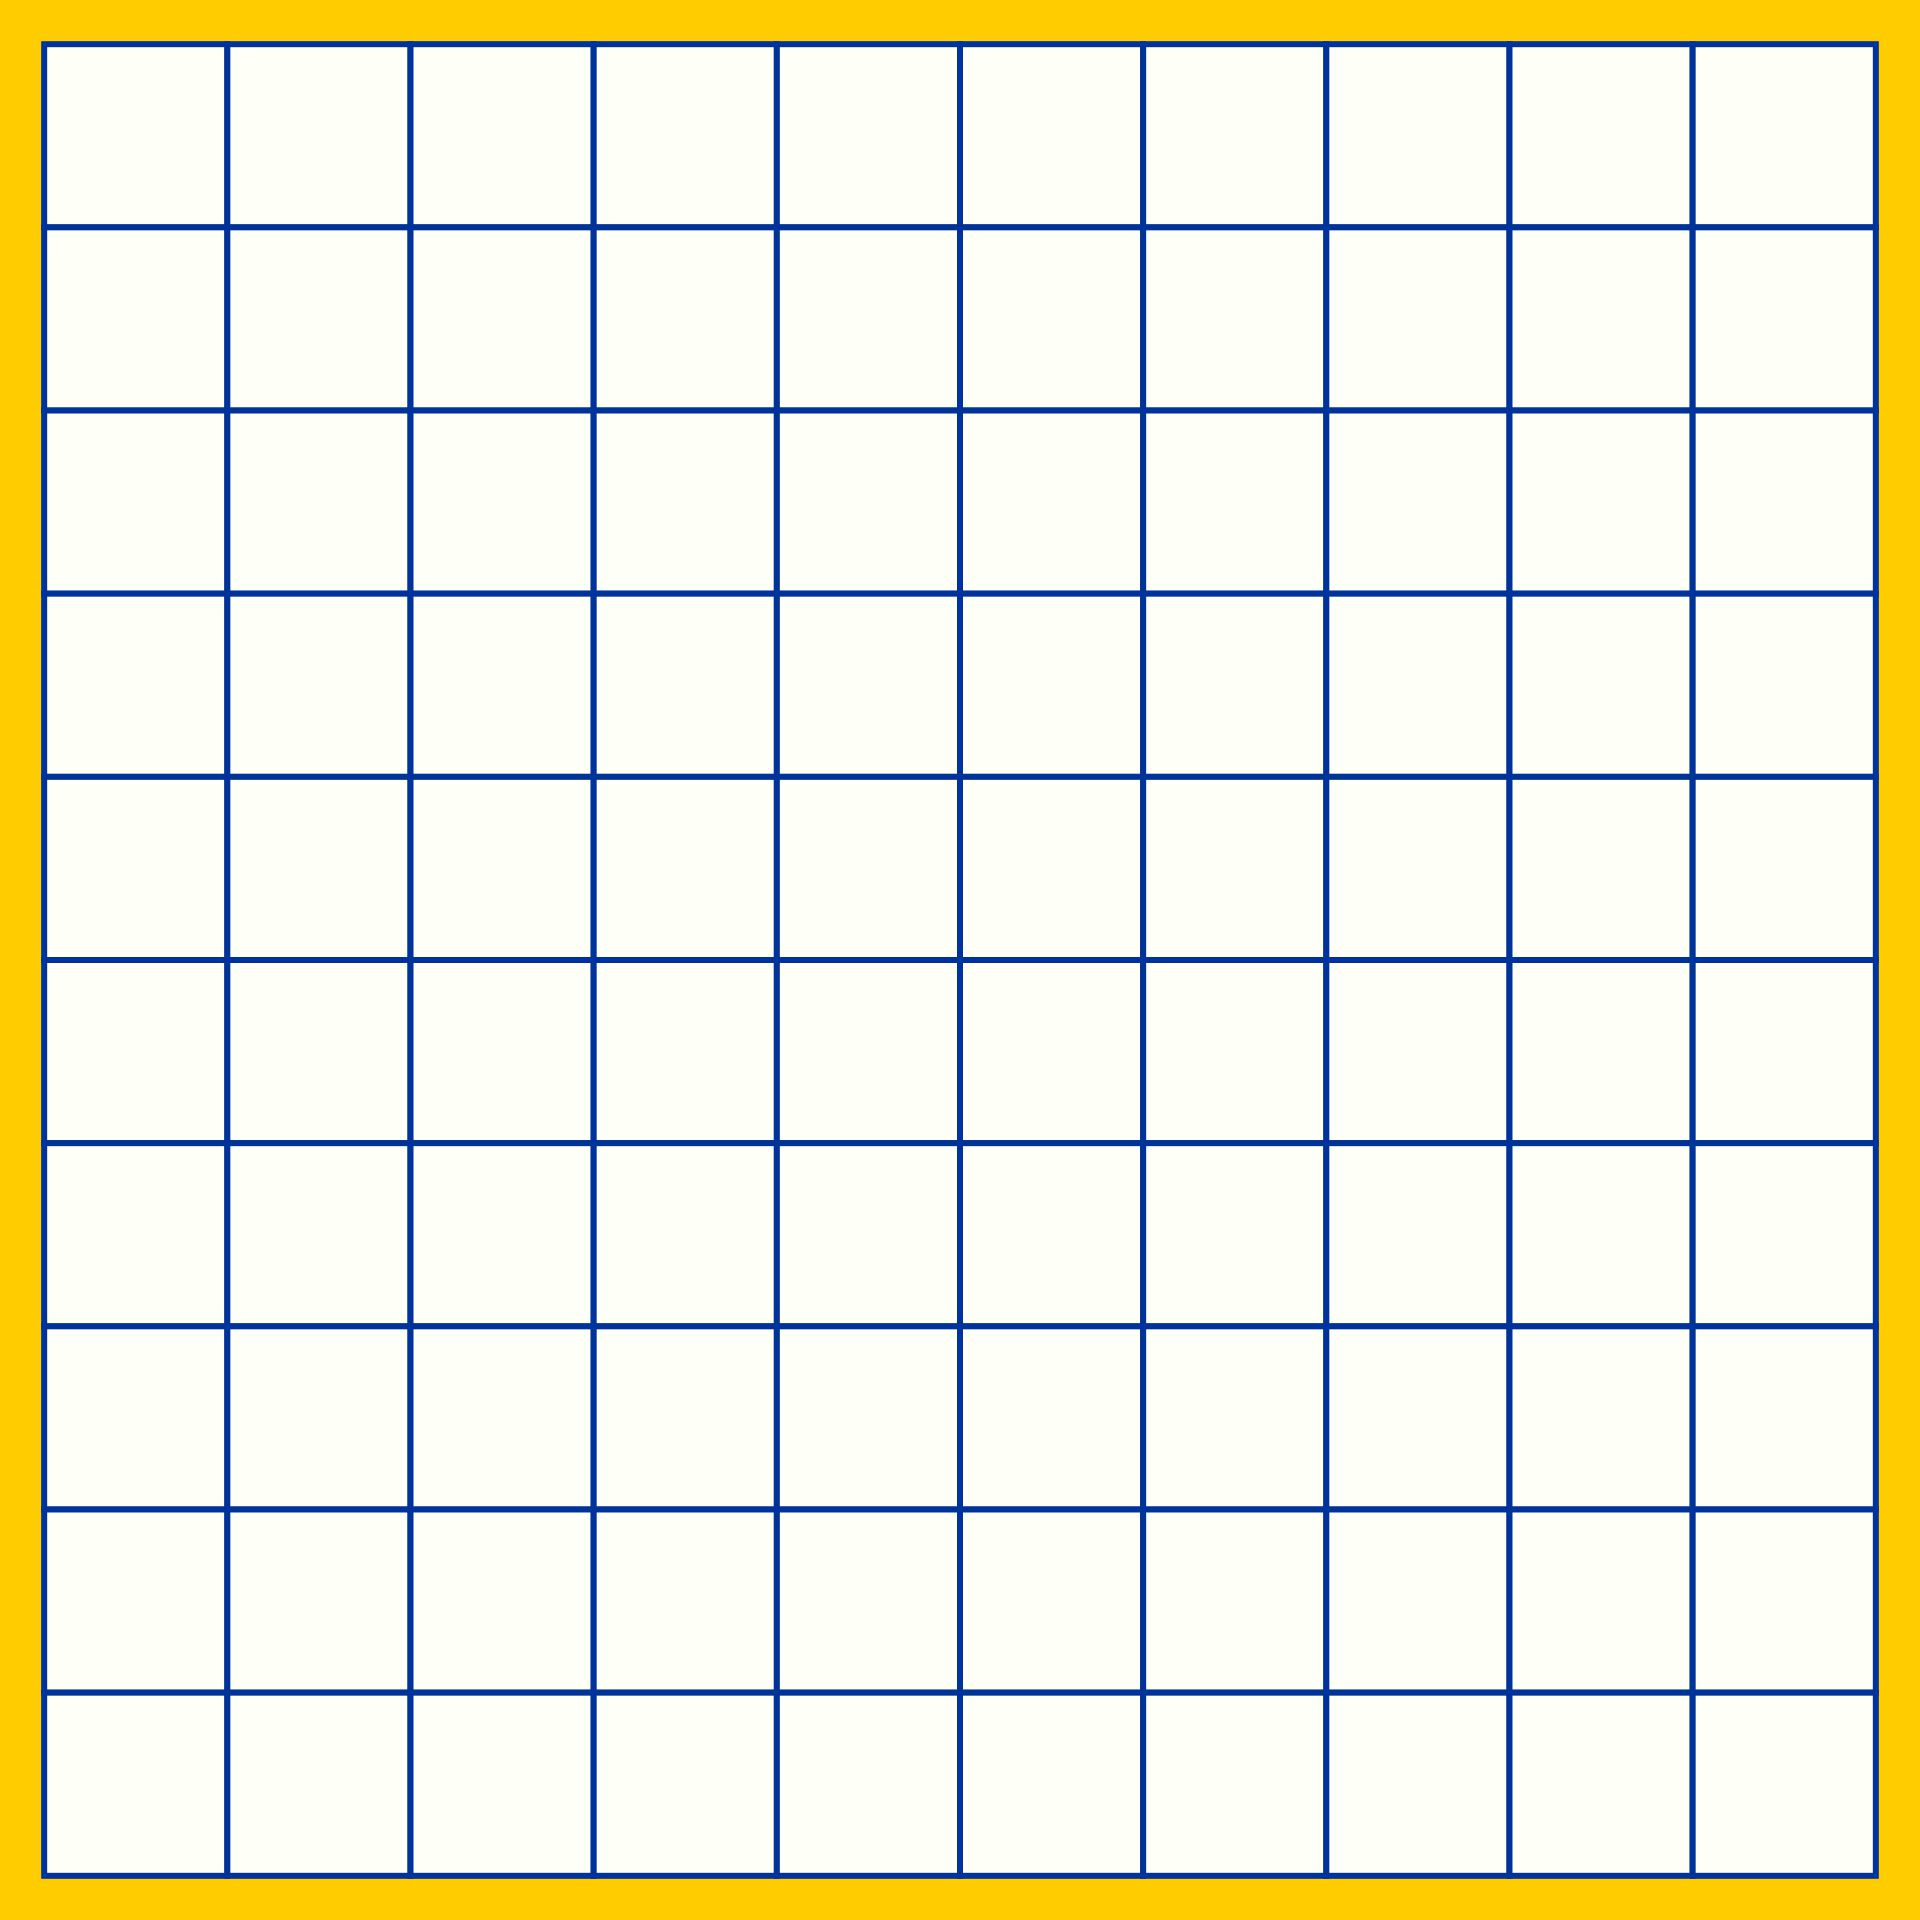 4 Best Images Of 10 By 10 Grids Printable Blank 100